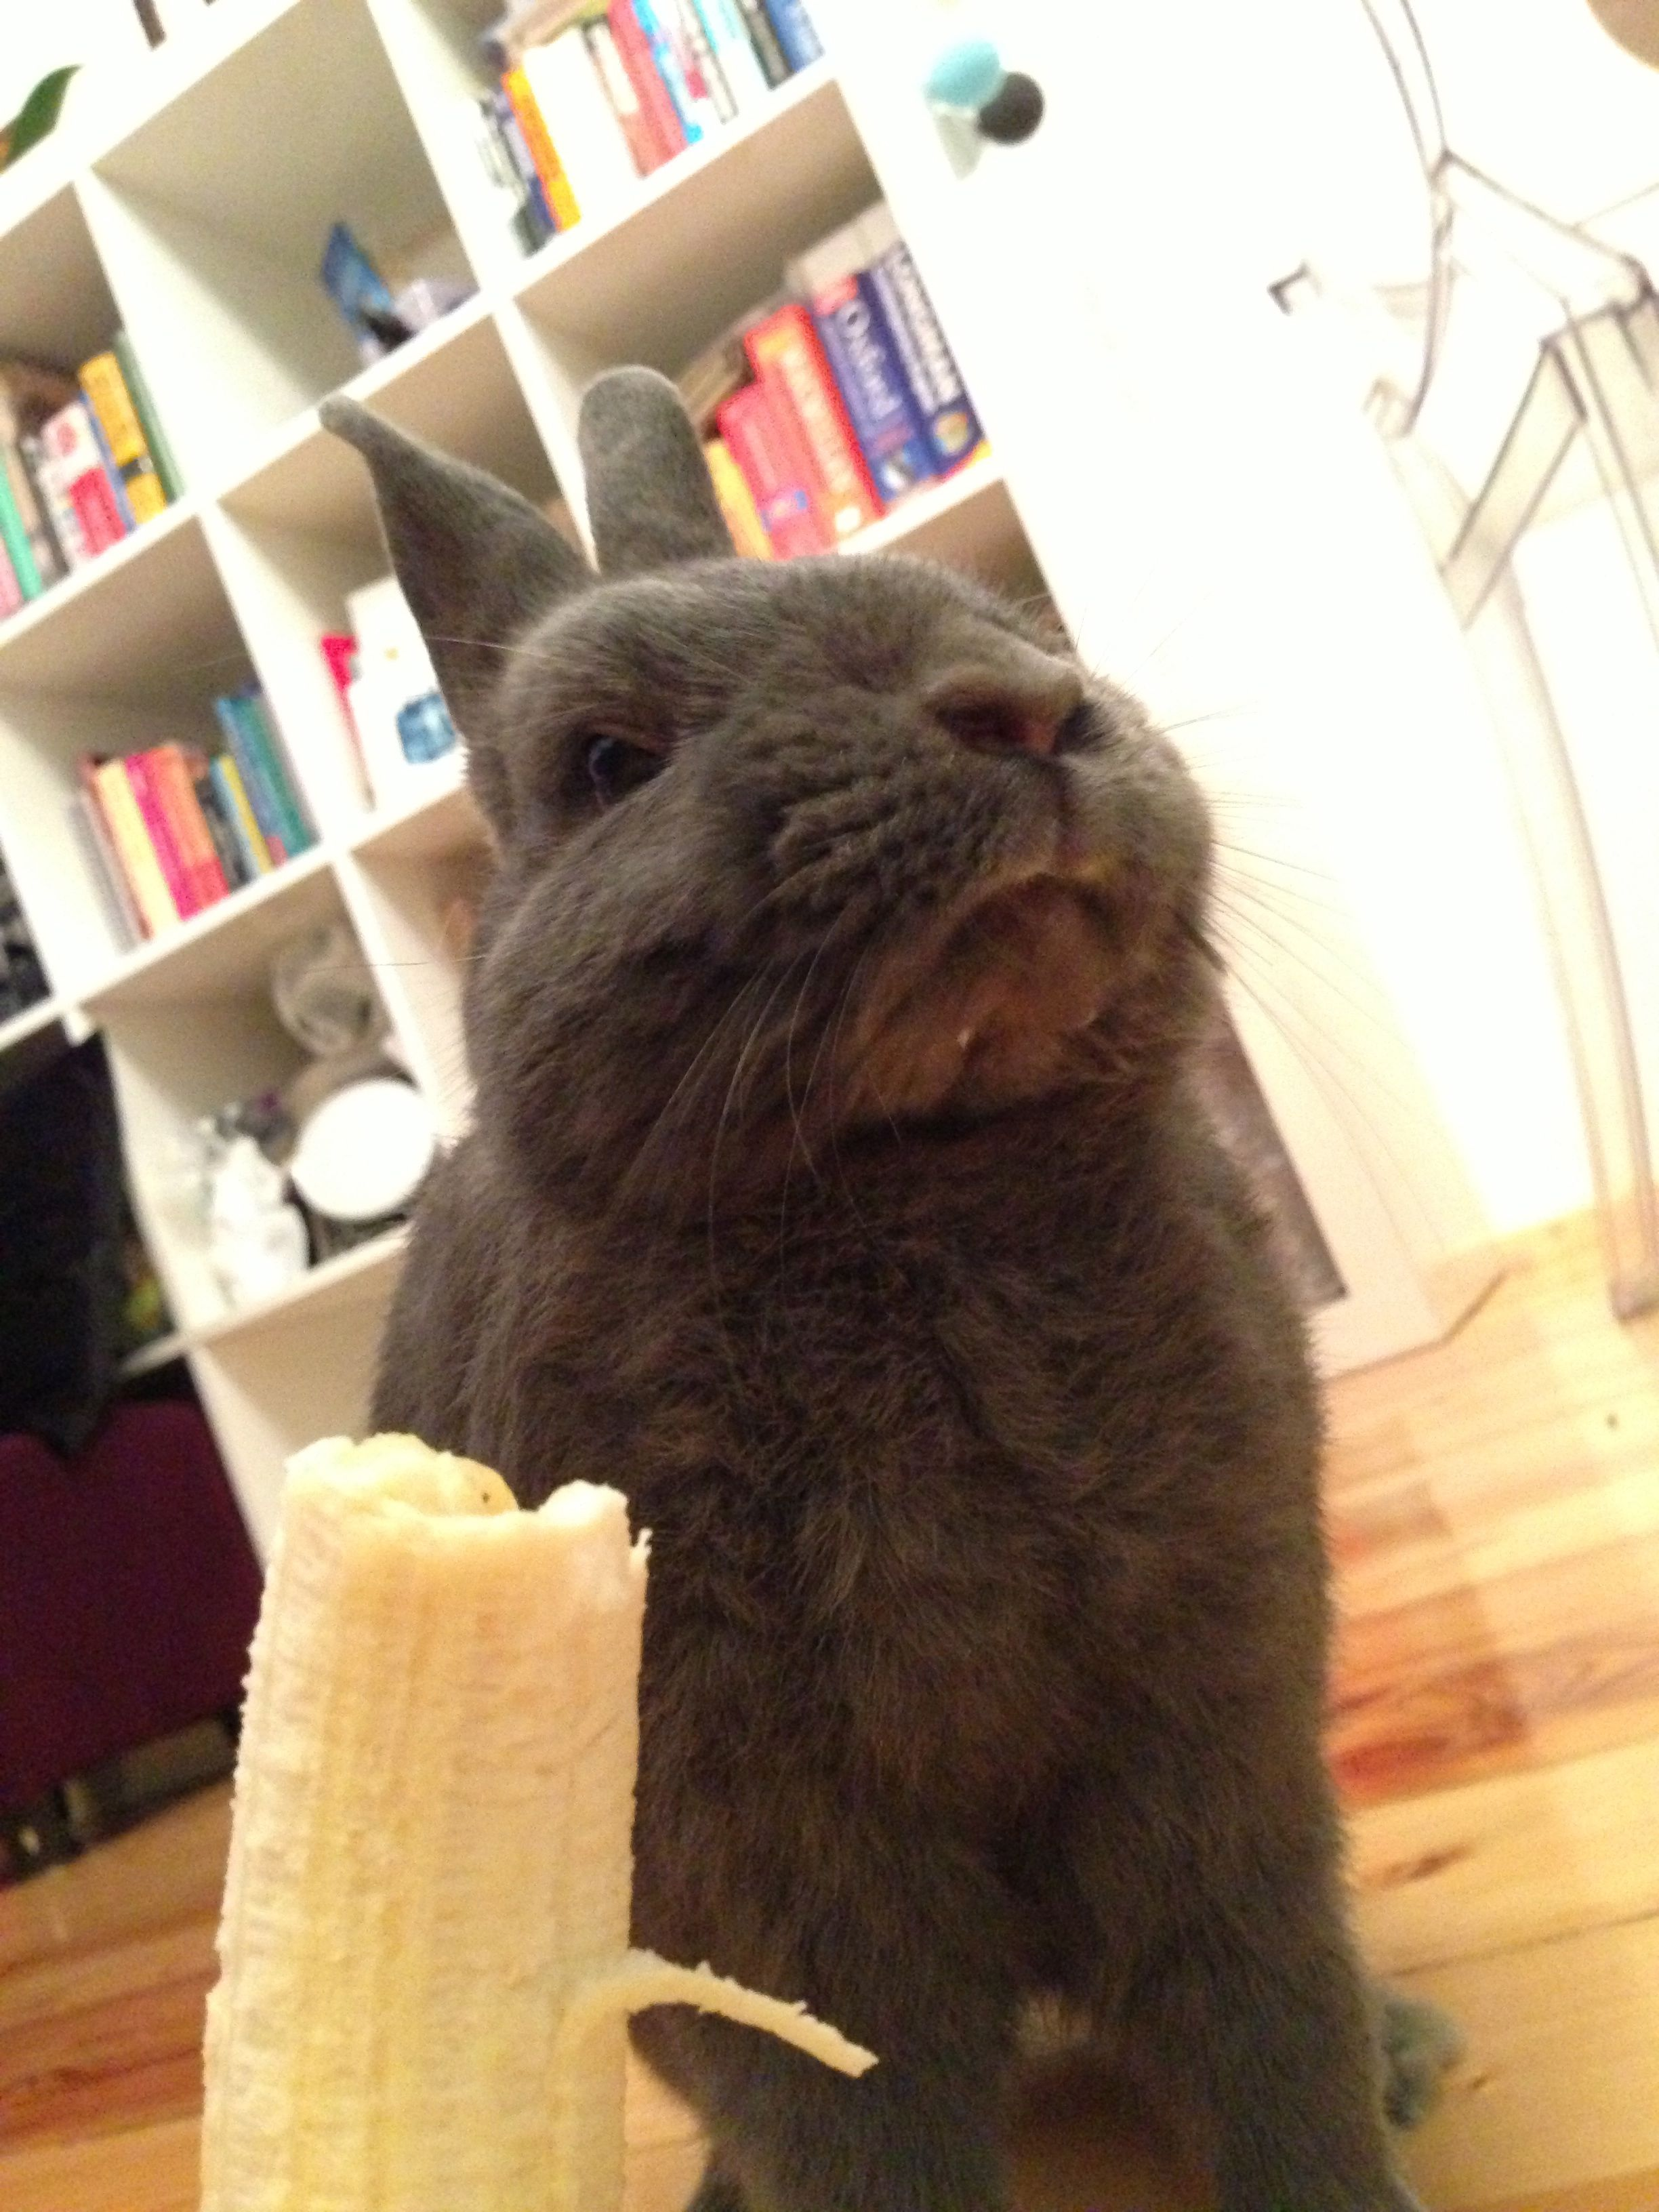 Bunny Appears to Disapprove of Banana, But the Tiny Bit on His Chin Tells a Different Story!